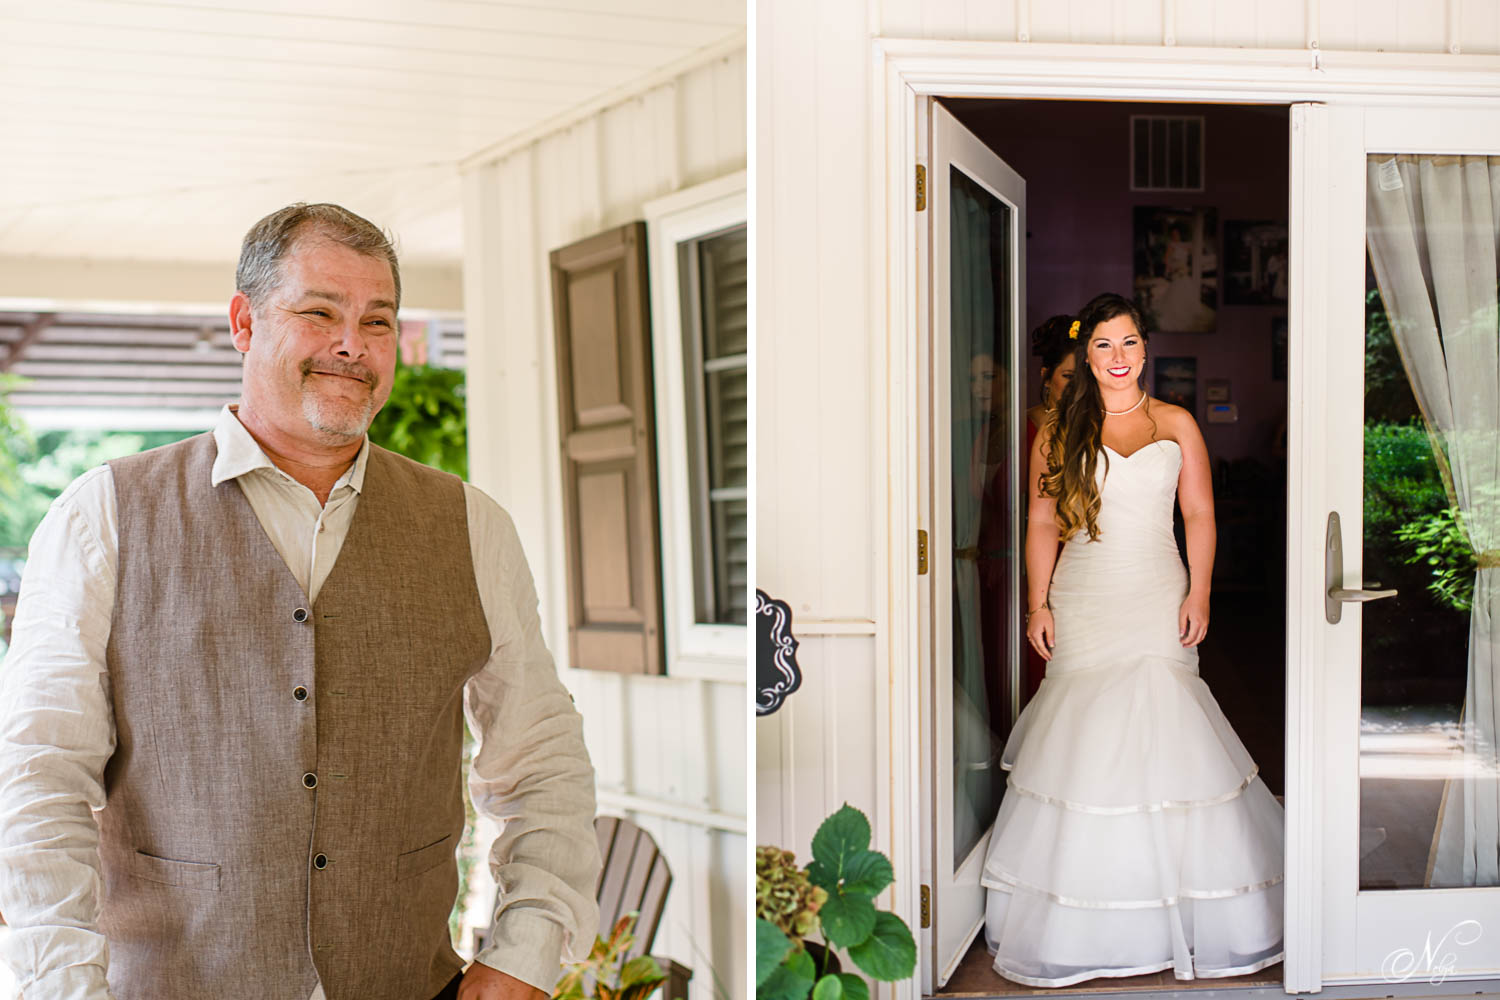 dad seeing his daughter in her wedding dress for the first time.